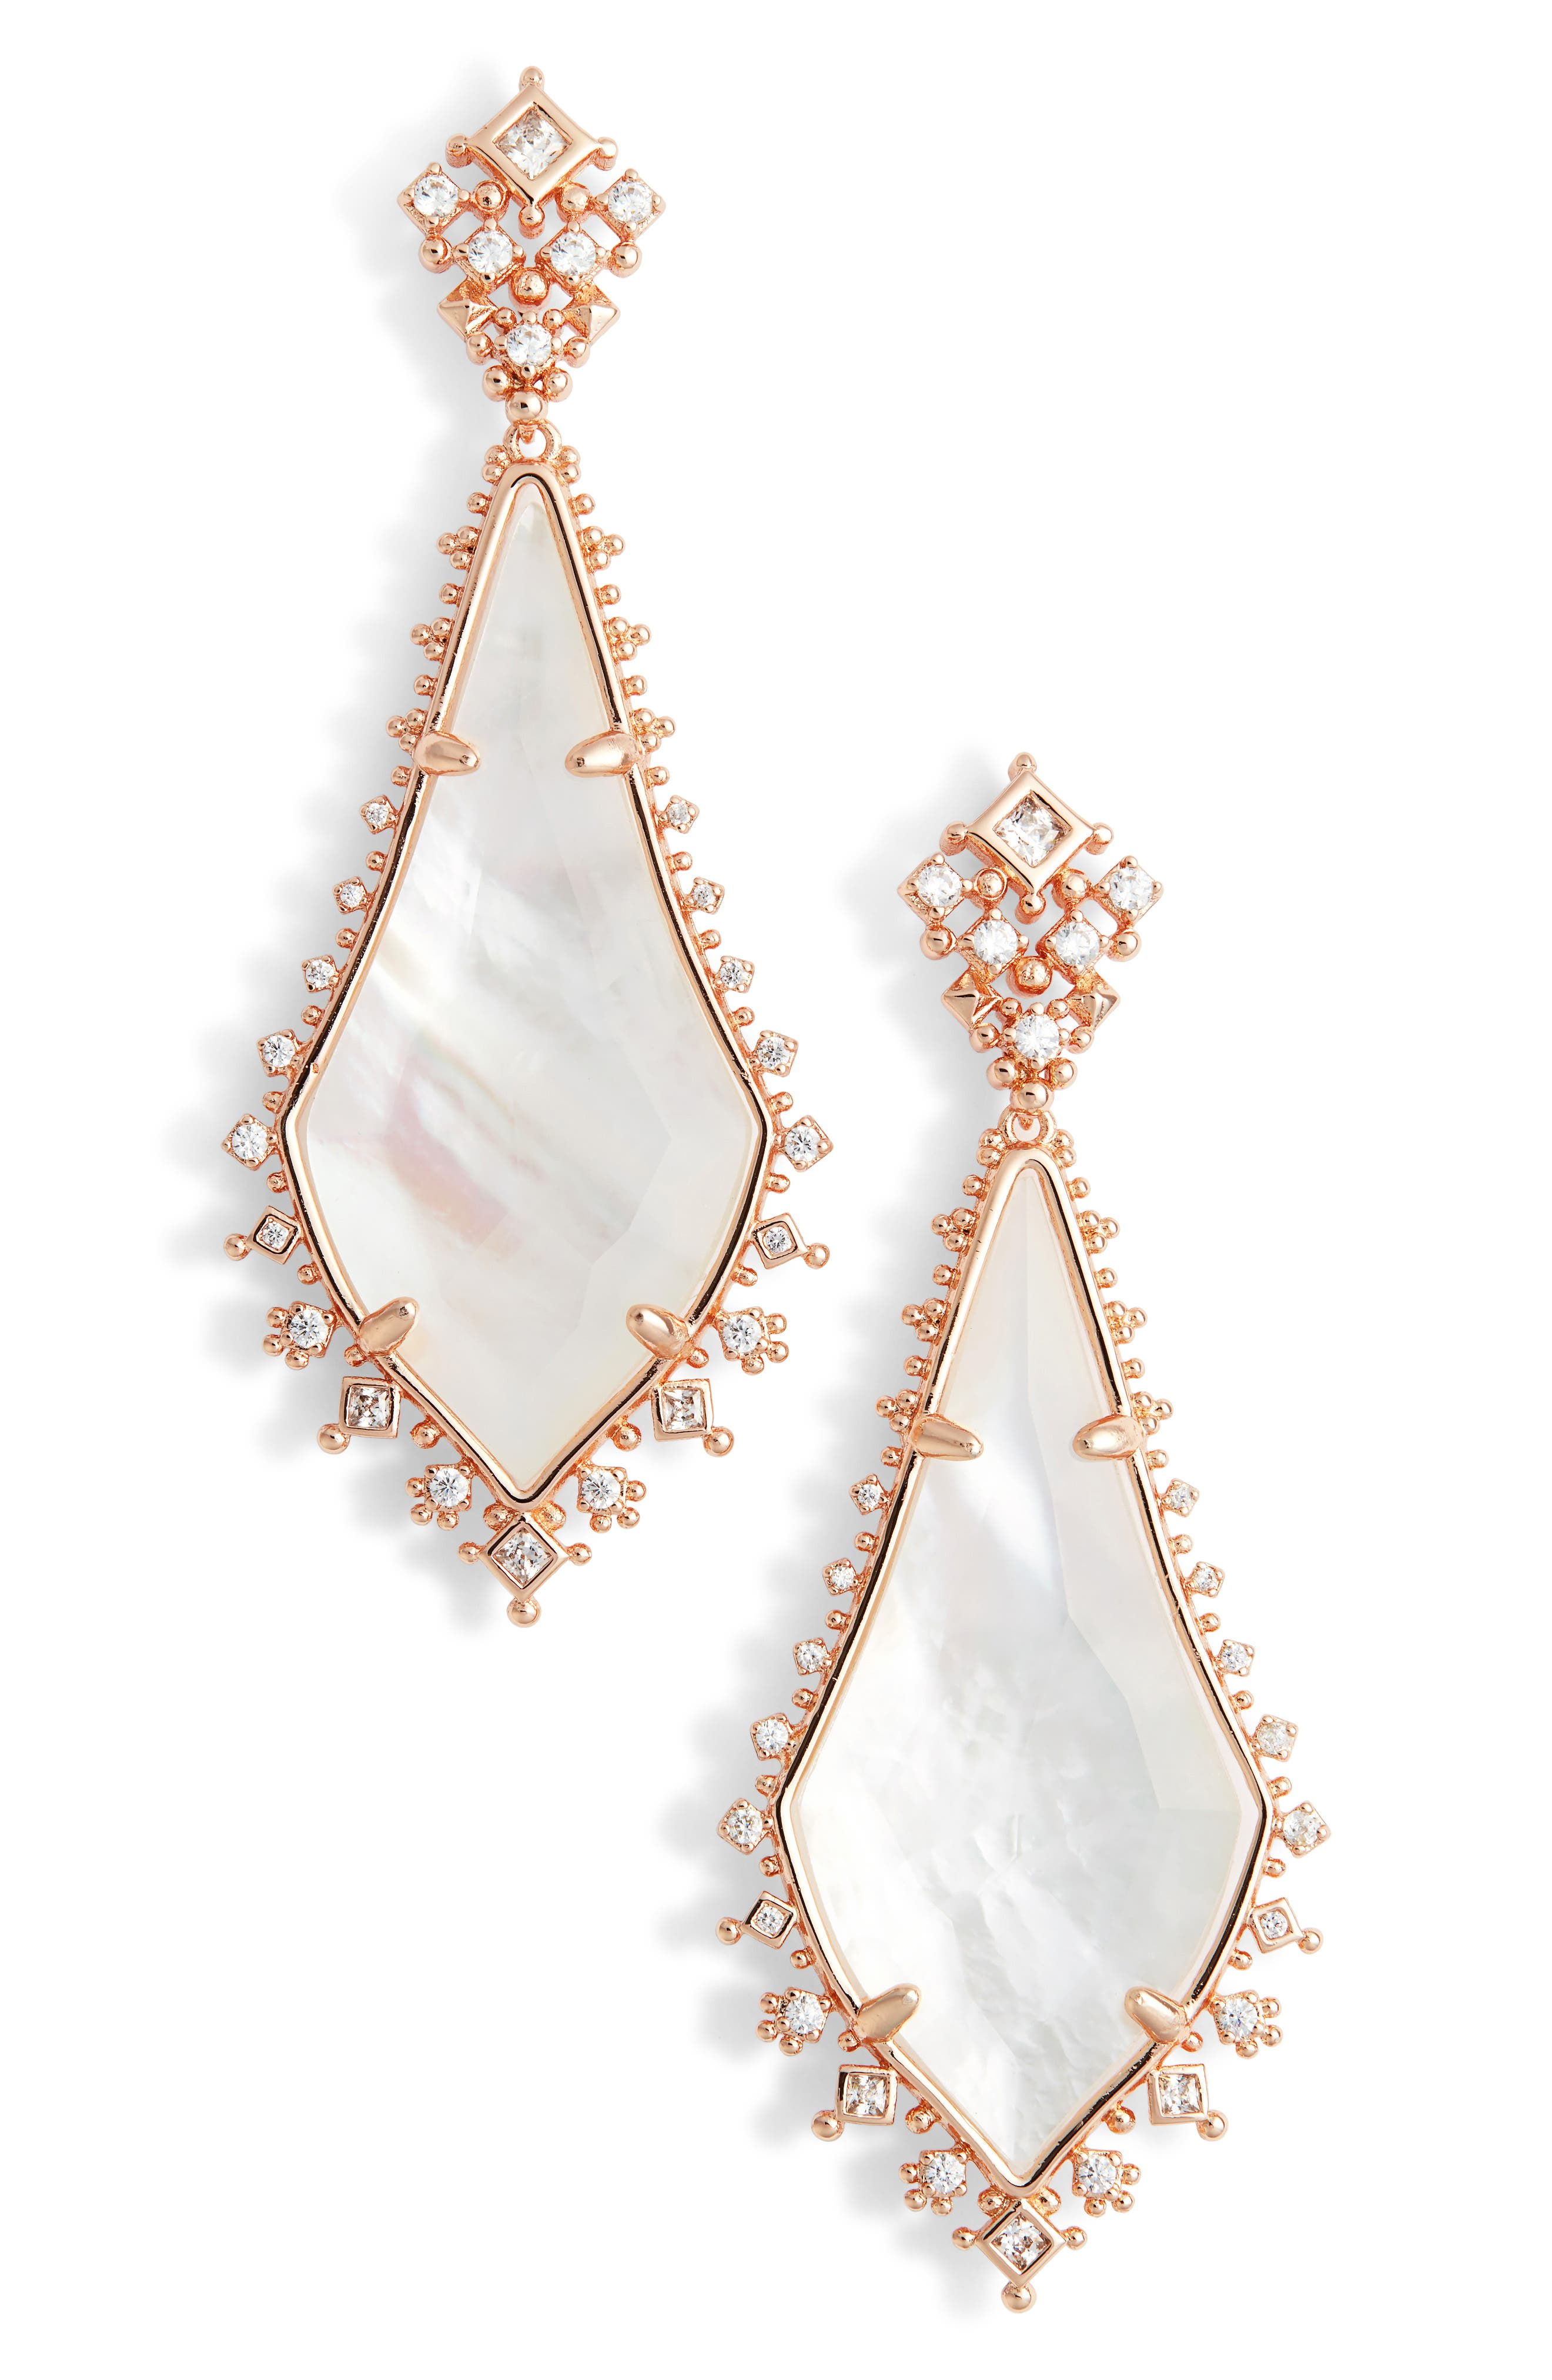 Martha Mother of Pearl Drop Earrings,                             Main thumbnail 1, color,                             Rose Gold